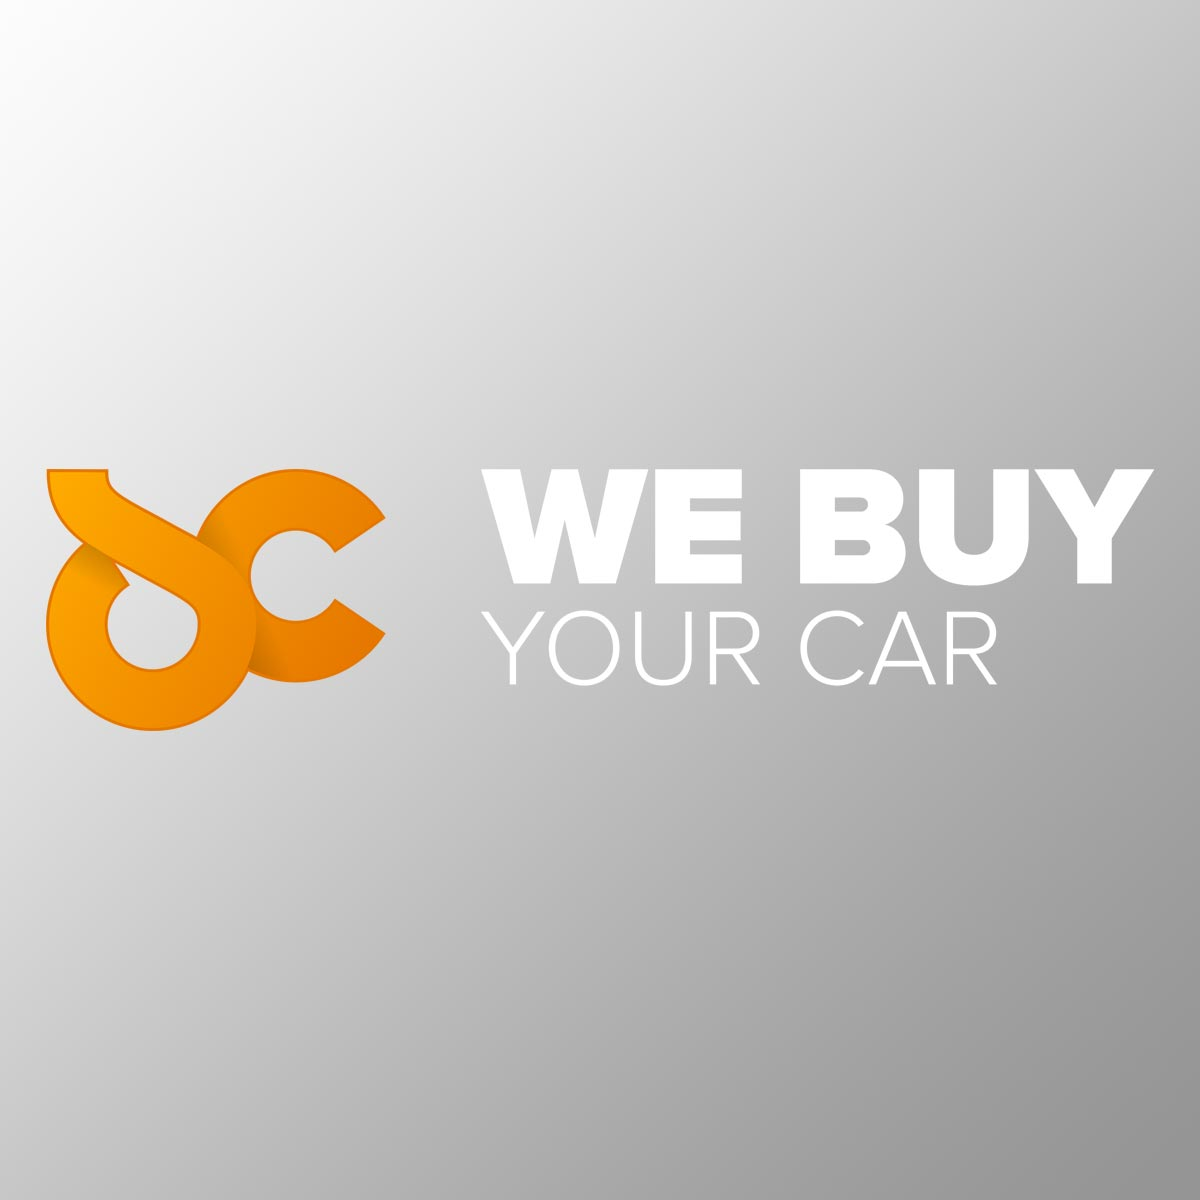 We Buy Your Car - Frequently Asked Questons